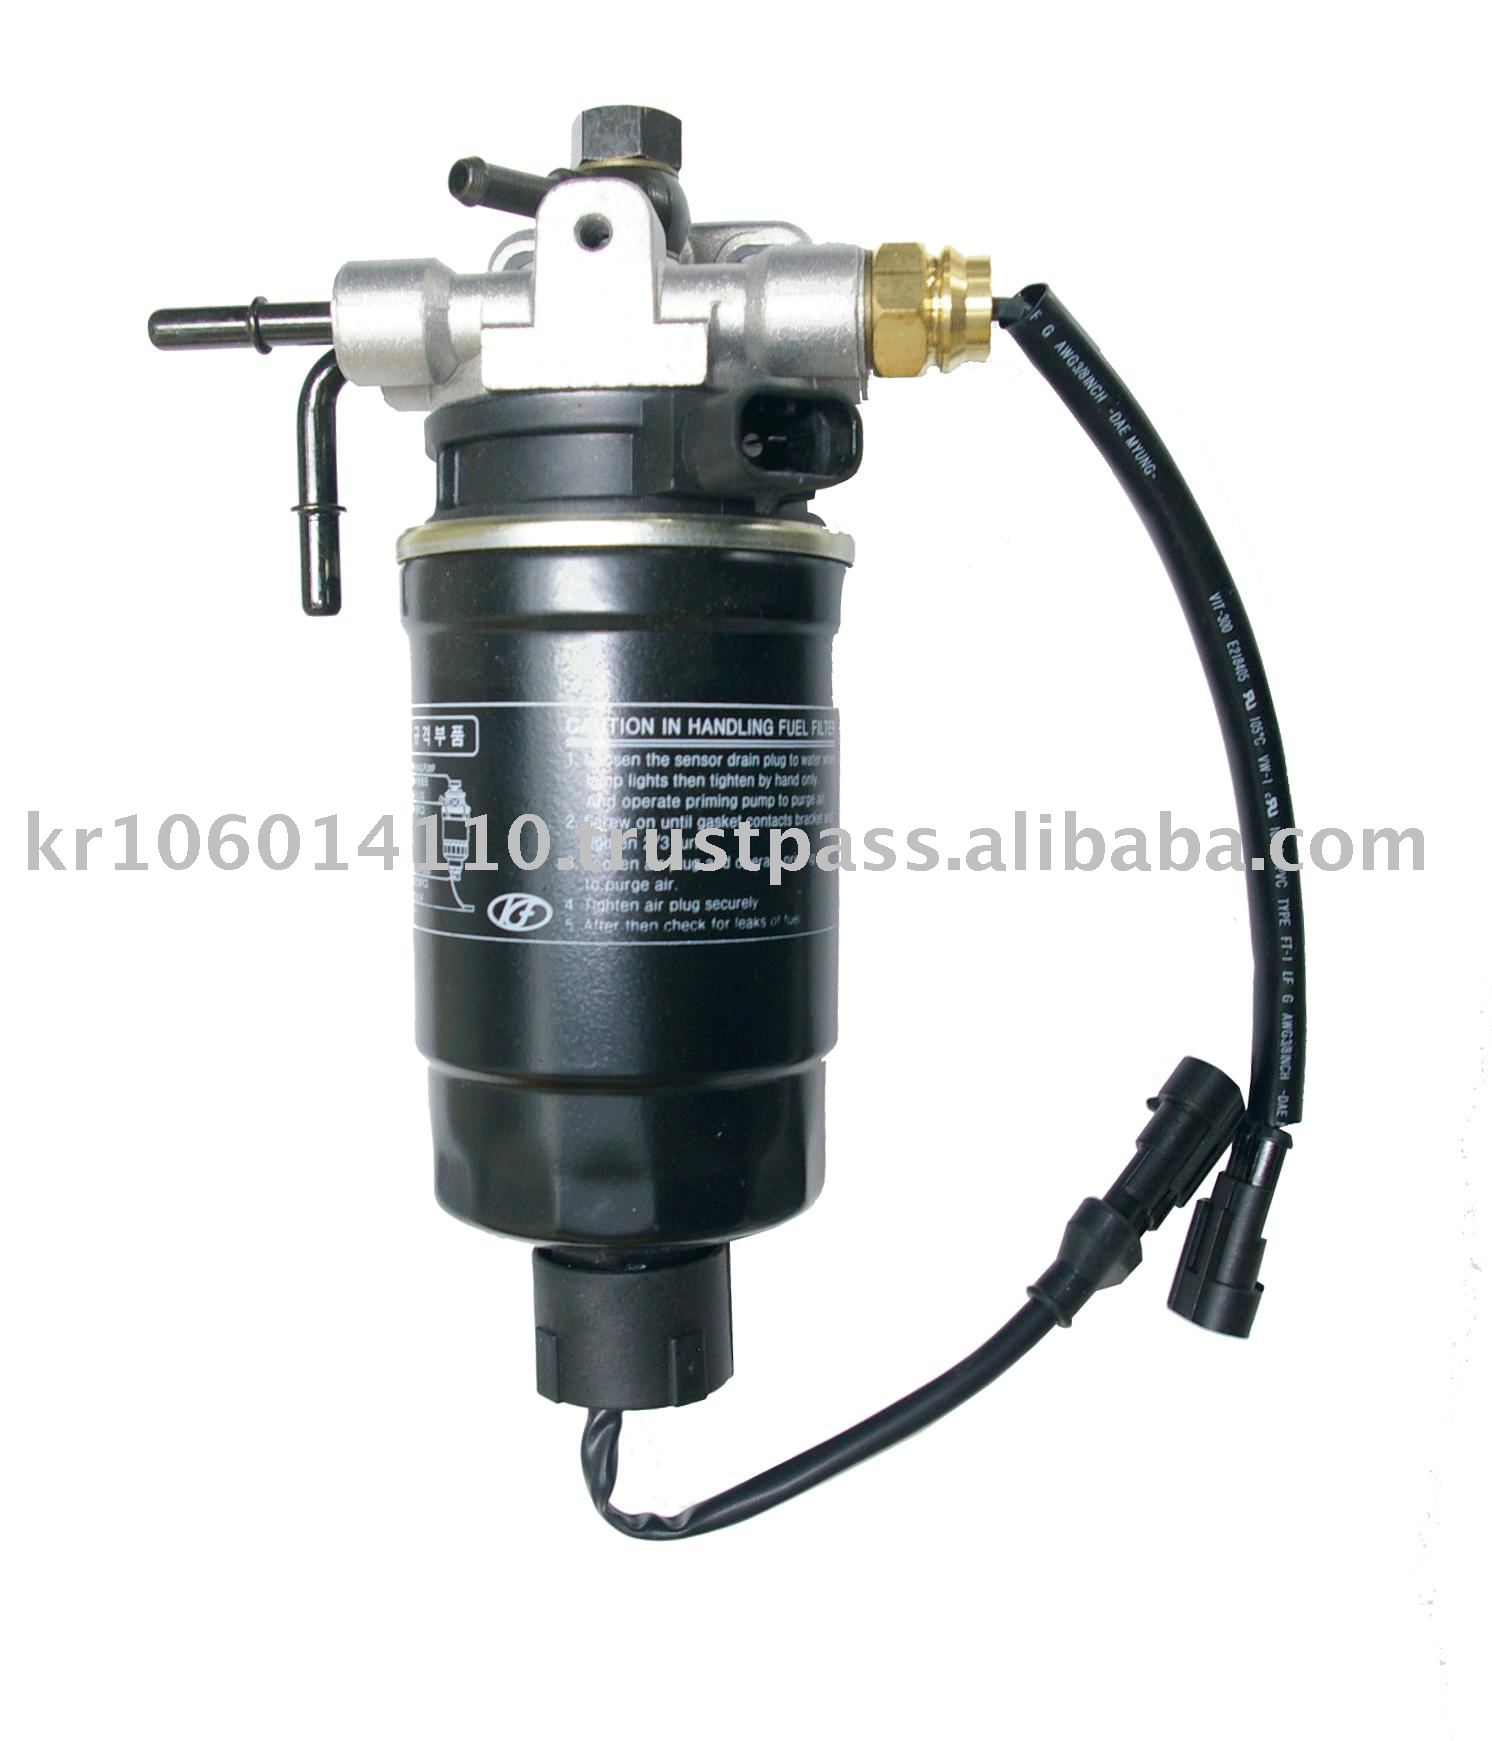 Crdi Fuel Filter(new Sportage {kia} / Tucson {hyundai} ) - Buy Car Fuel  Filter,Auto Fuel Filter,Kia Product on Alibaba.com